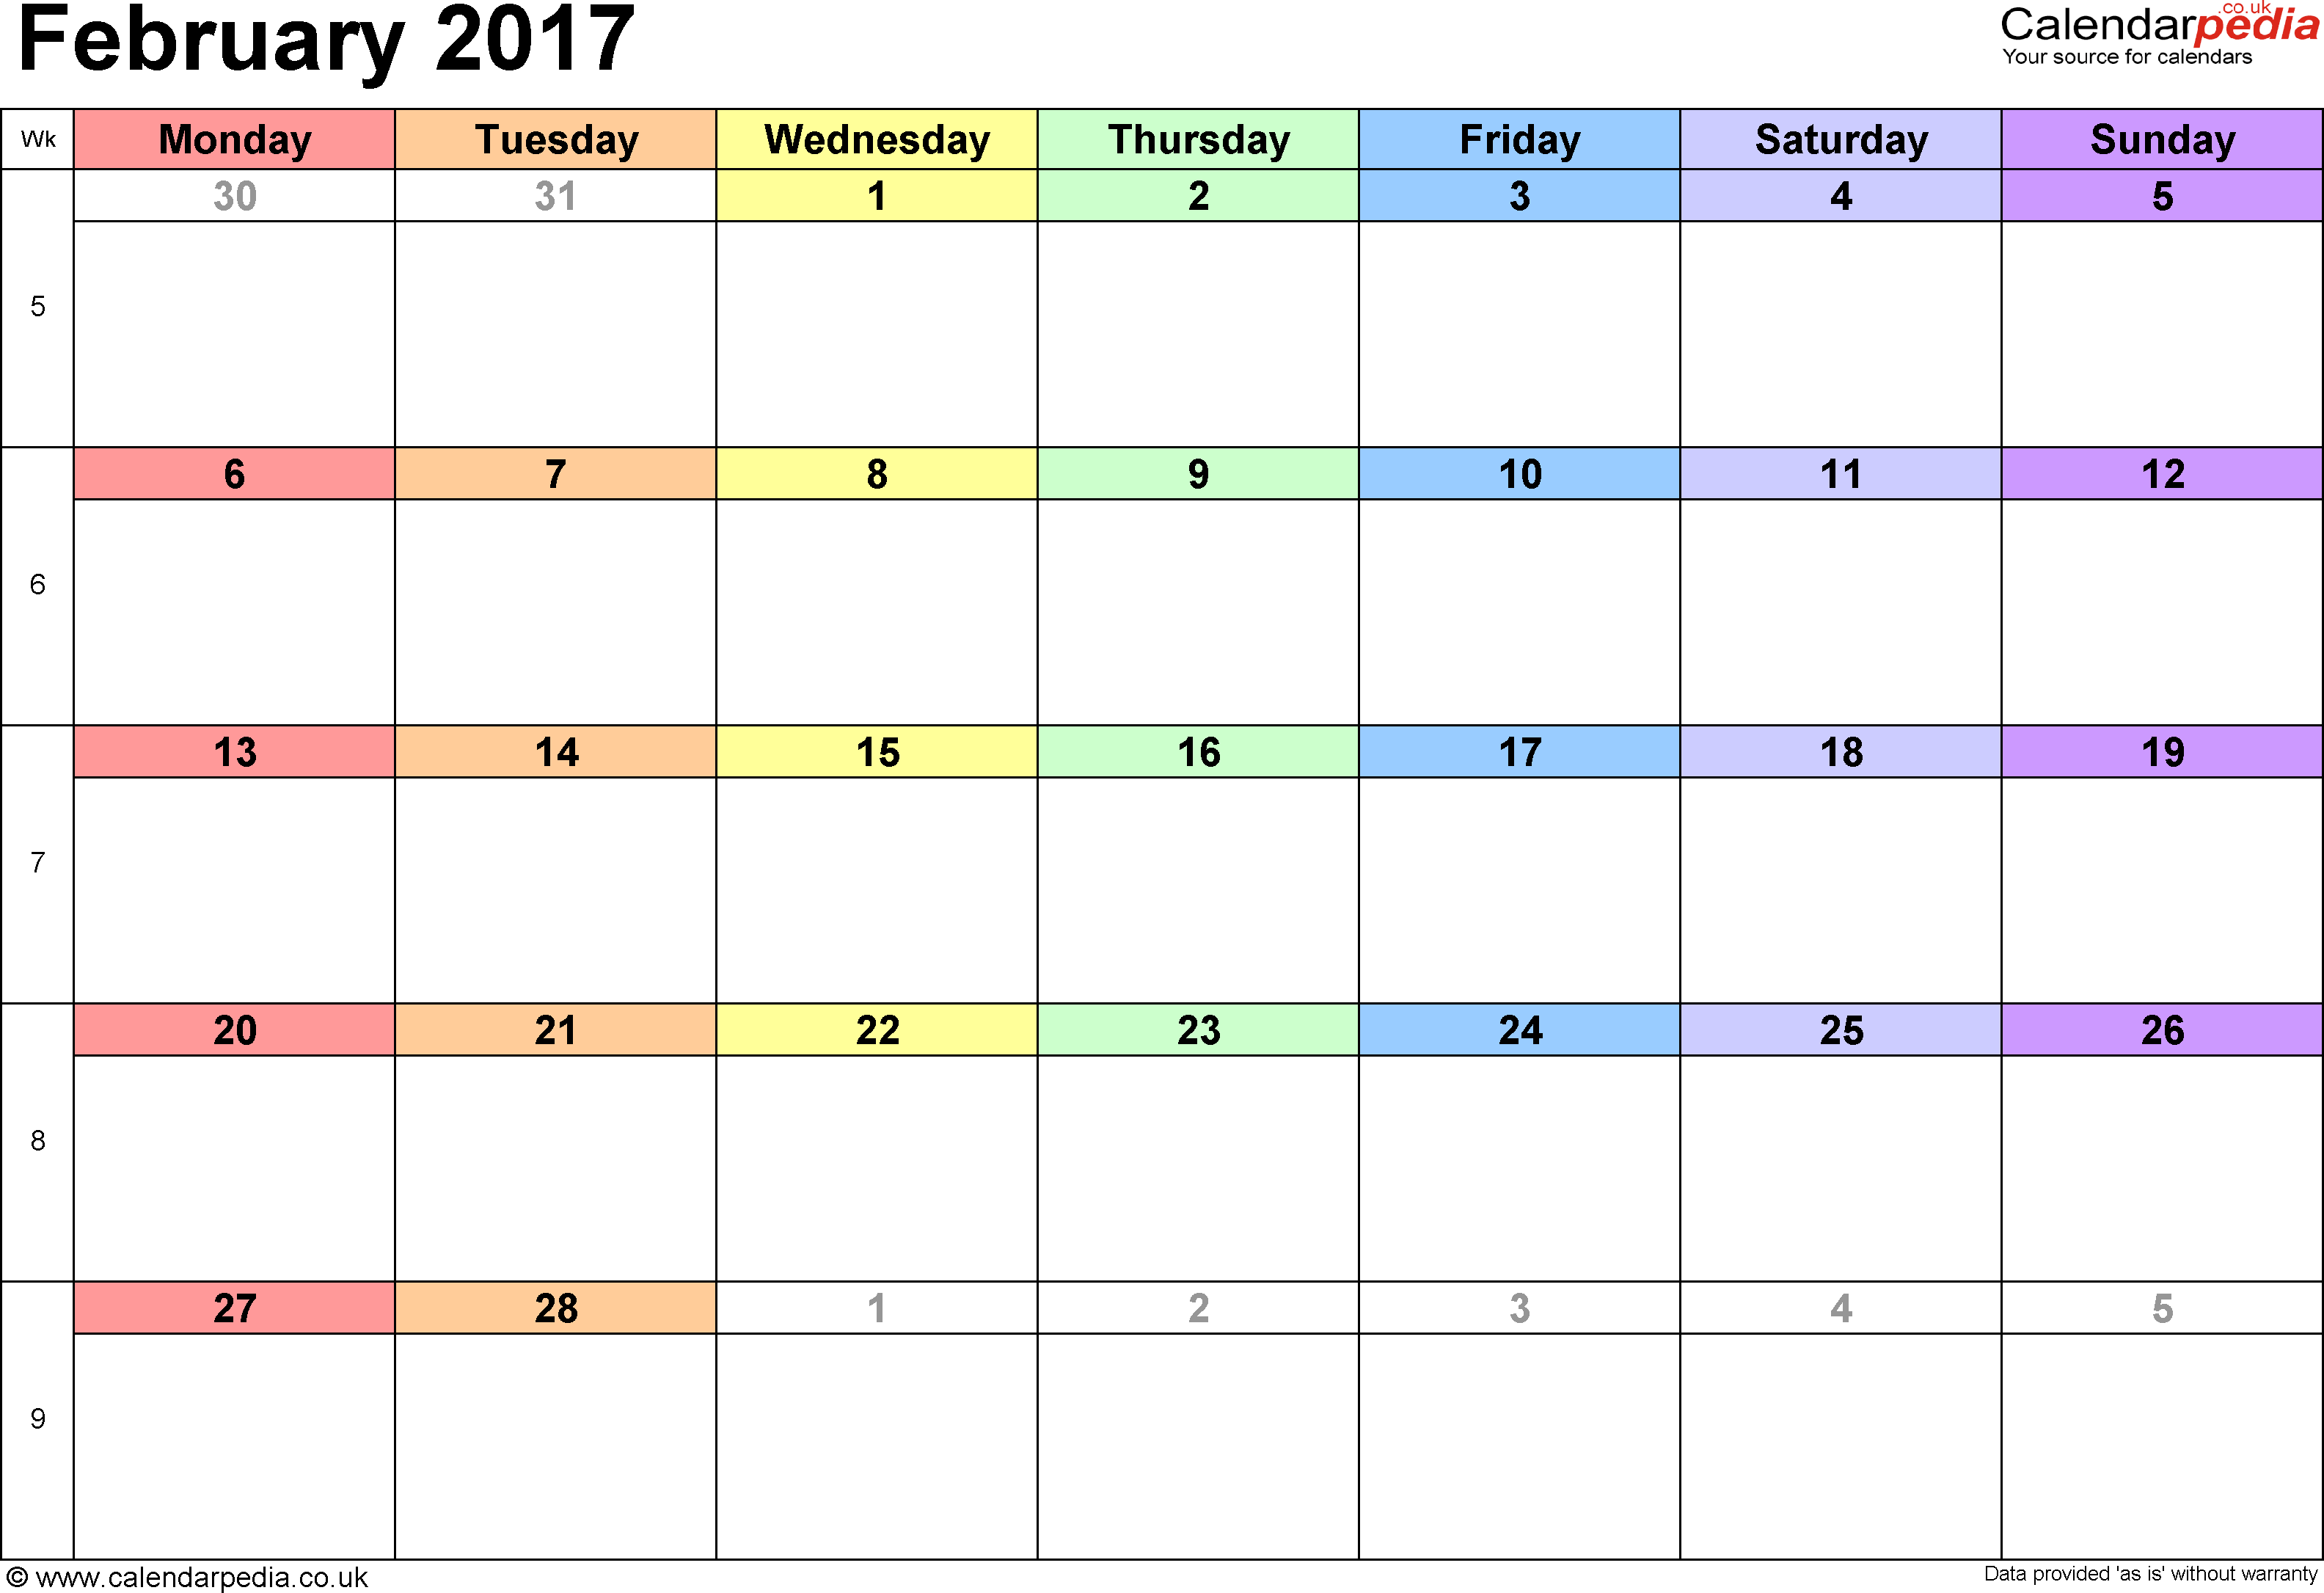 Calendar February 2017, landscape orientation, 1 page, with UK bank holidays and week numbers